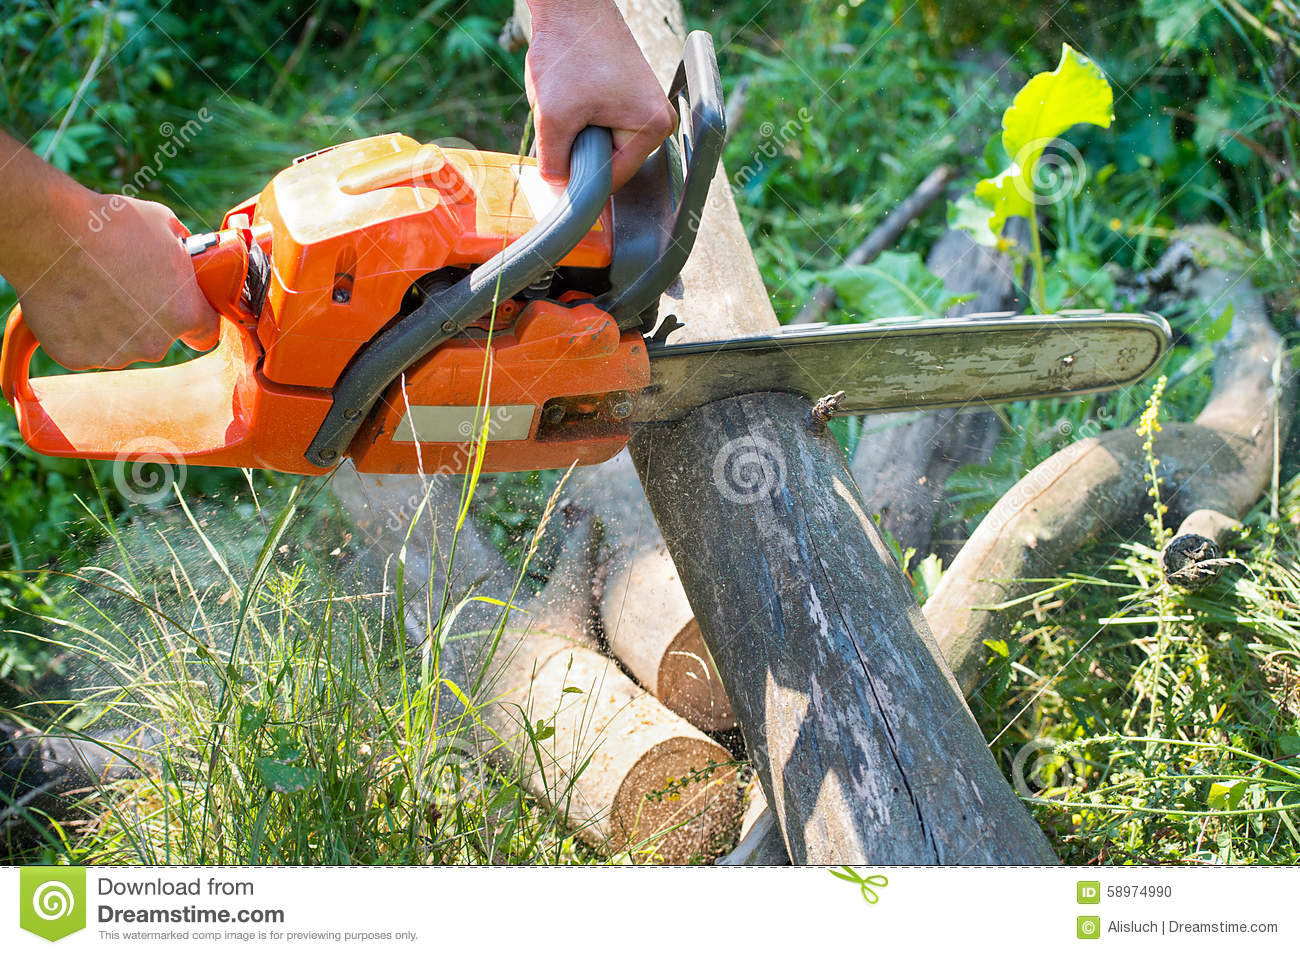 how to cut with a chainsaw